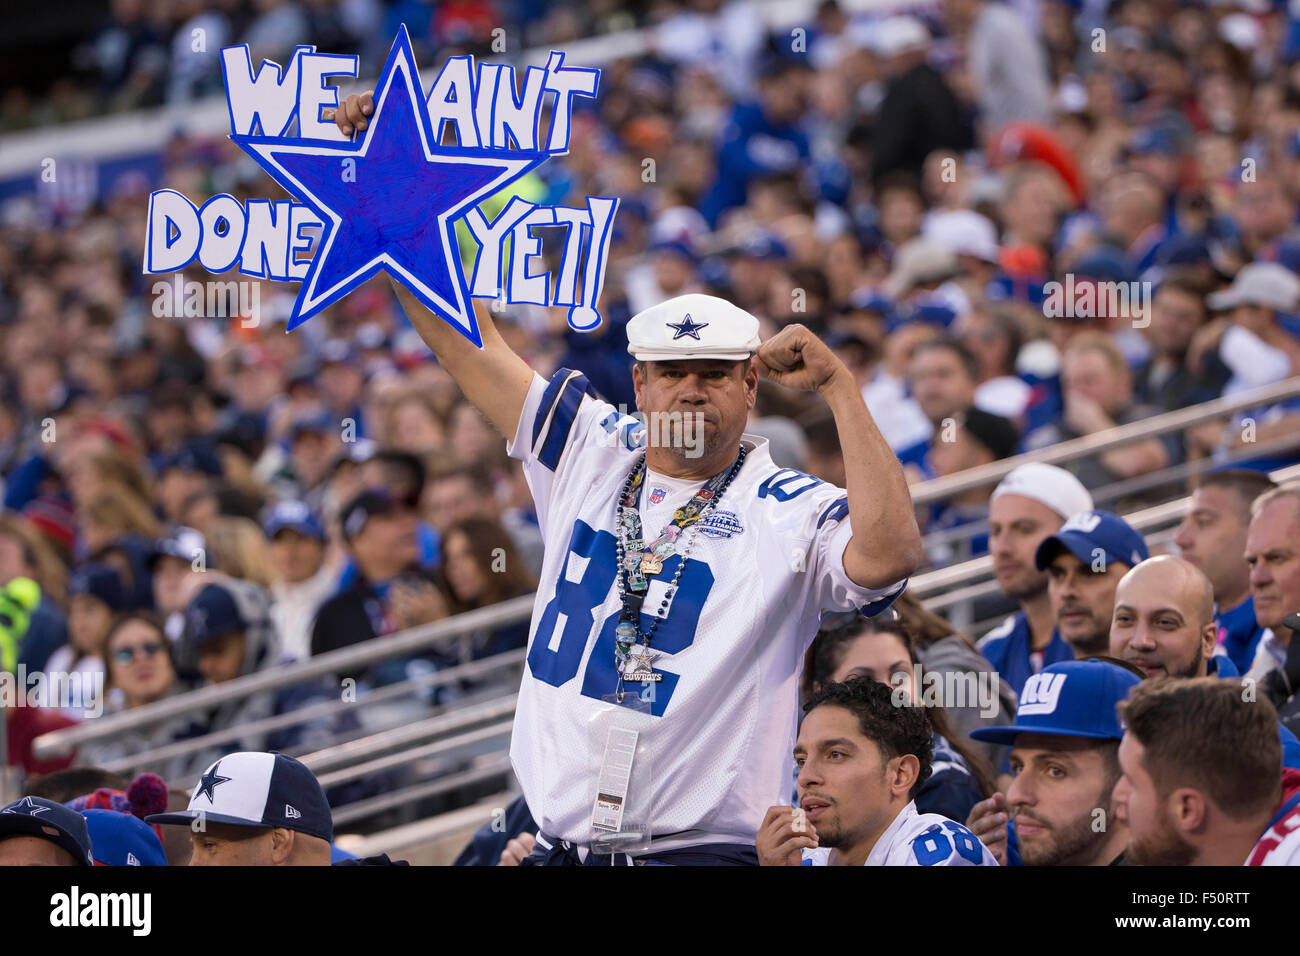 East Rutherford, New Jersey, USA. 25th Oct, 2015. Dallas Cowboys fan cheers his team on with a sign during the NFL - Stock Image